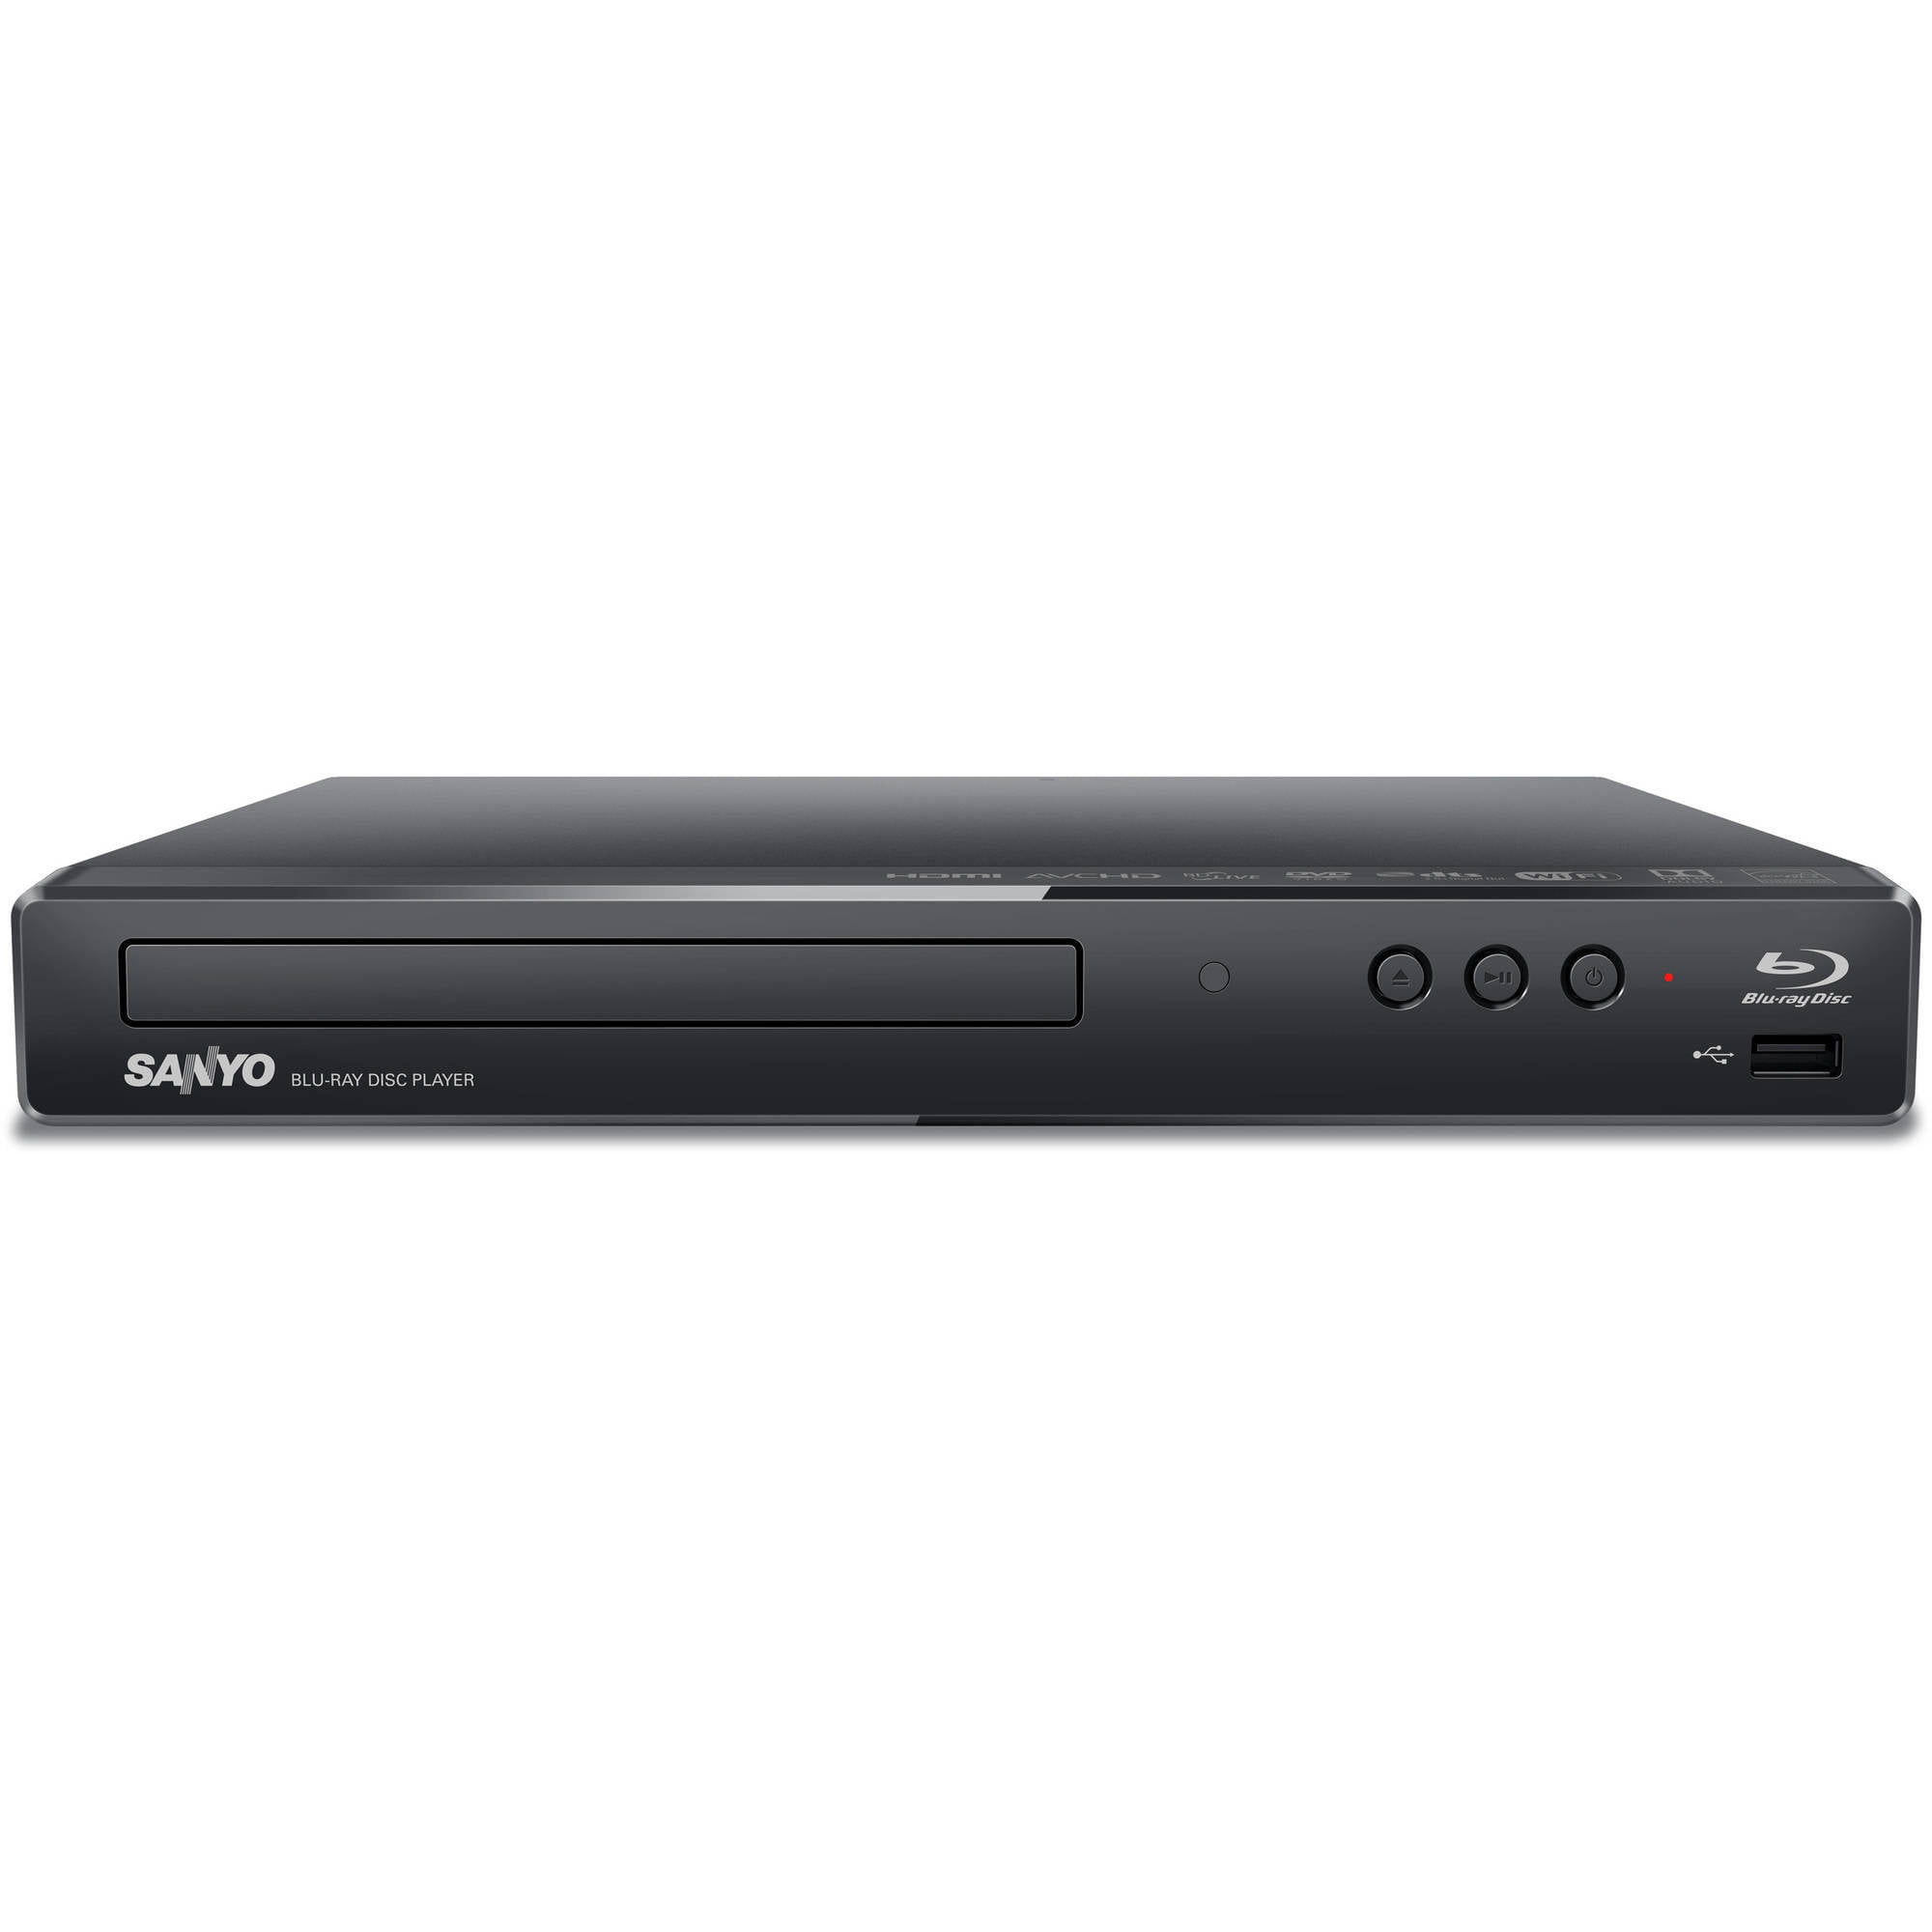 Refurbished Sanyo Blu-ray & DVD Player with Wi-Fi Streaming (FWBP706F) by Sanyo